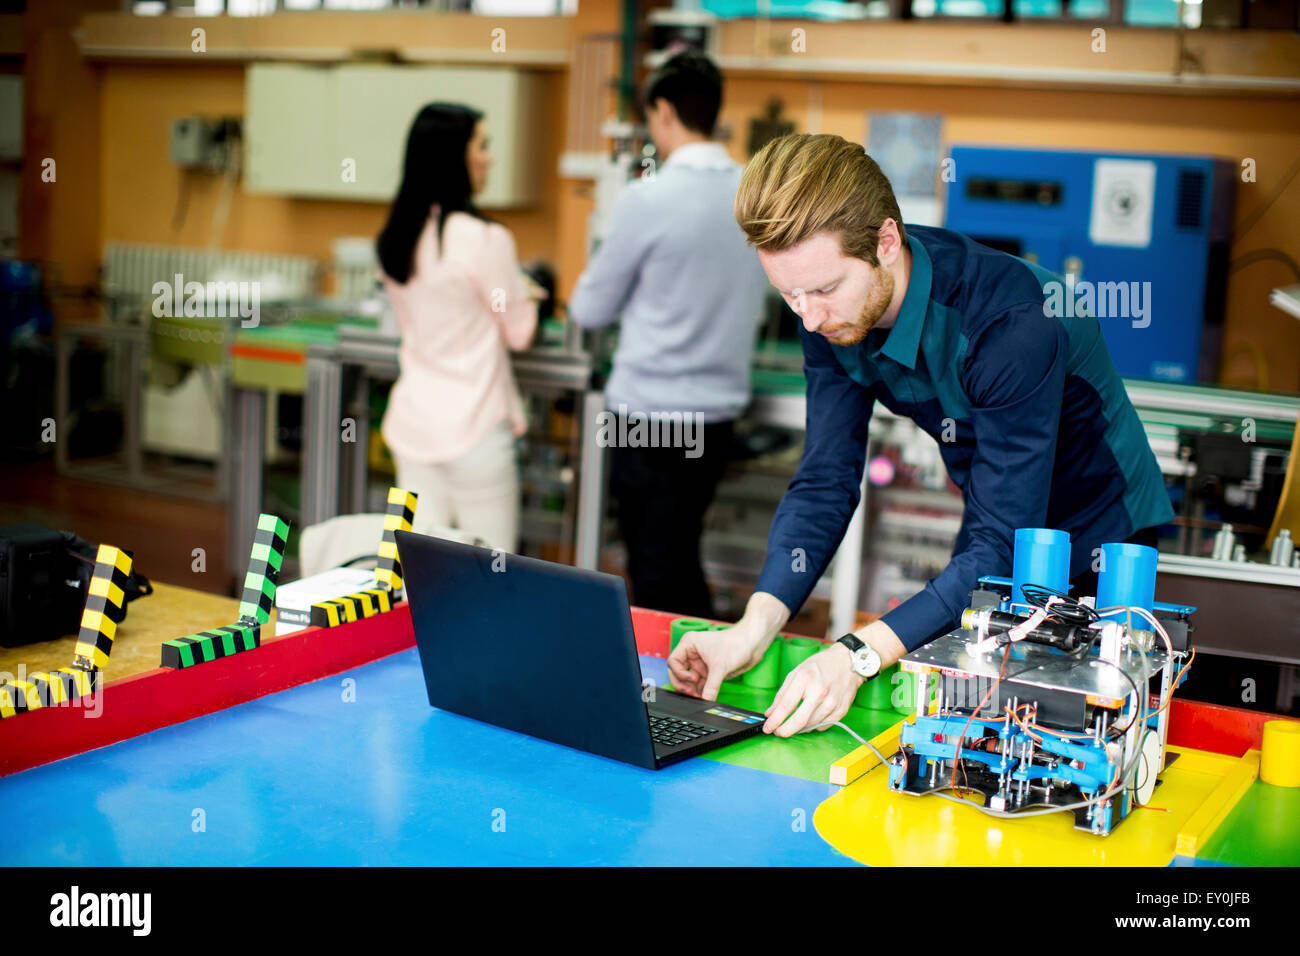 Young people in the robotics classroom - Stock Image